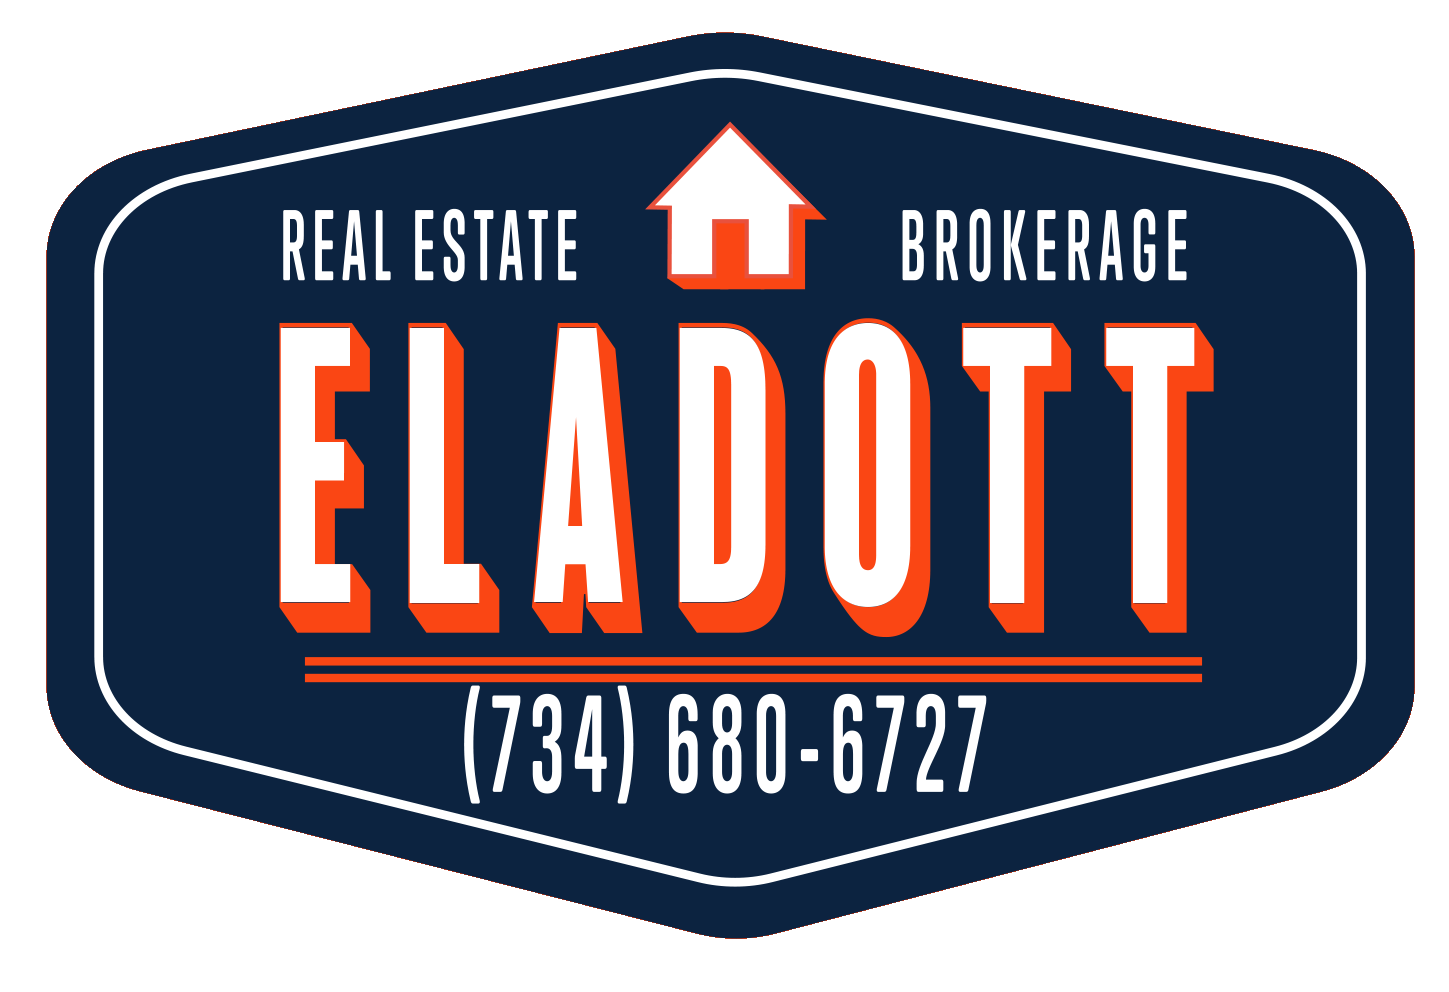 Eladott Real Estate Brokerage